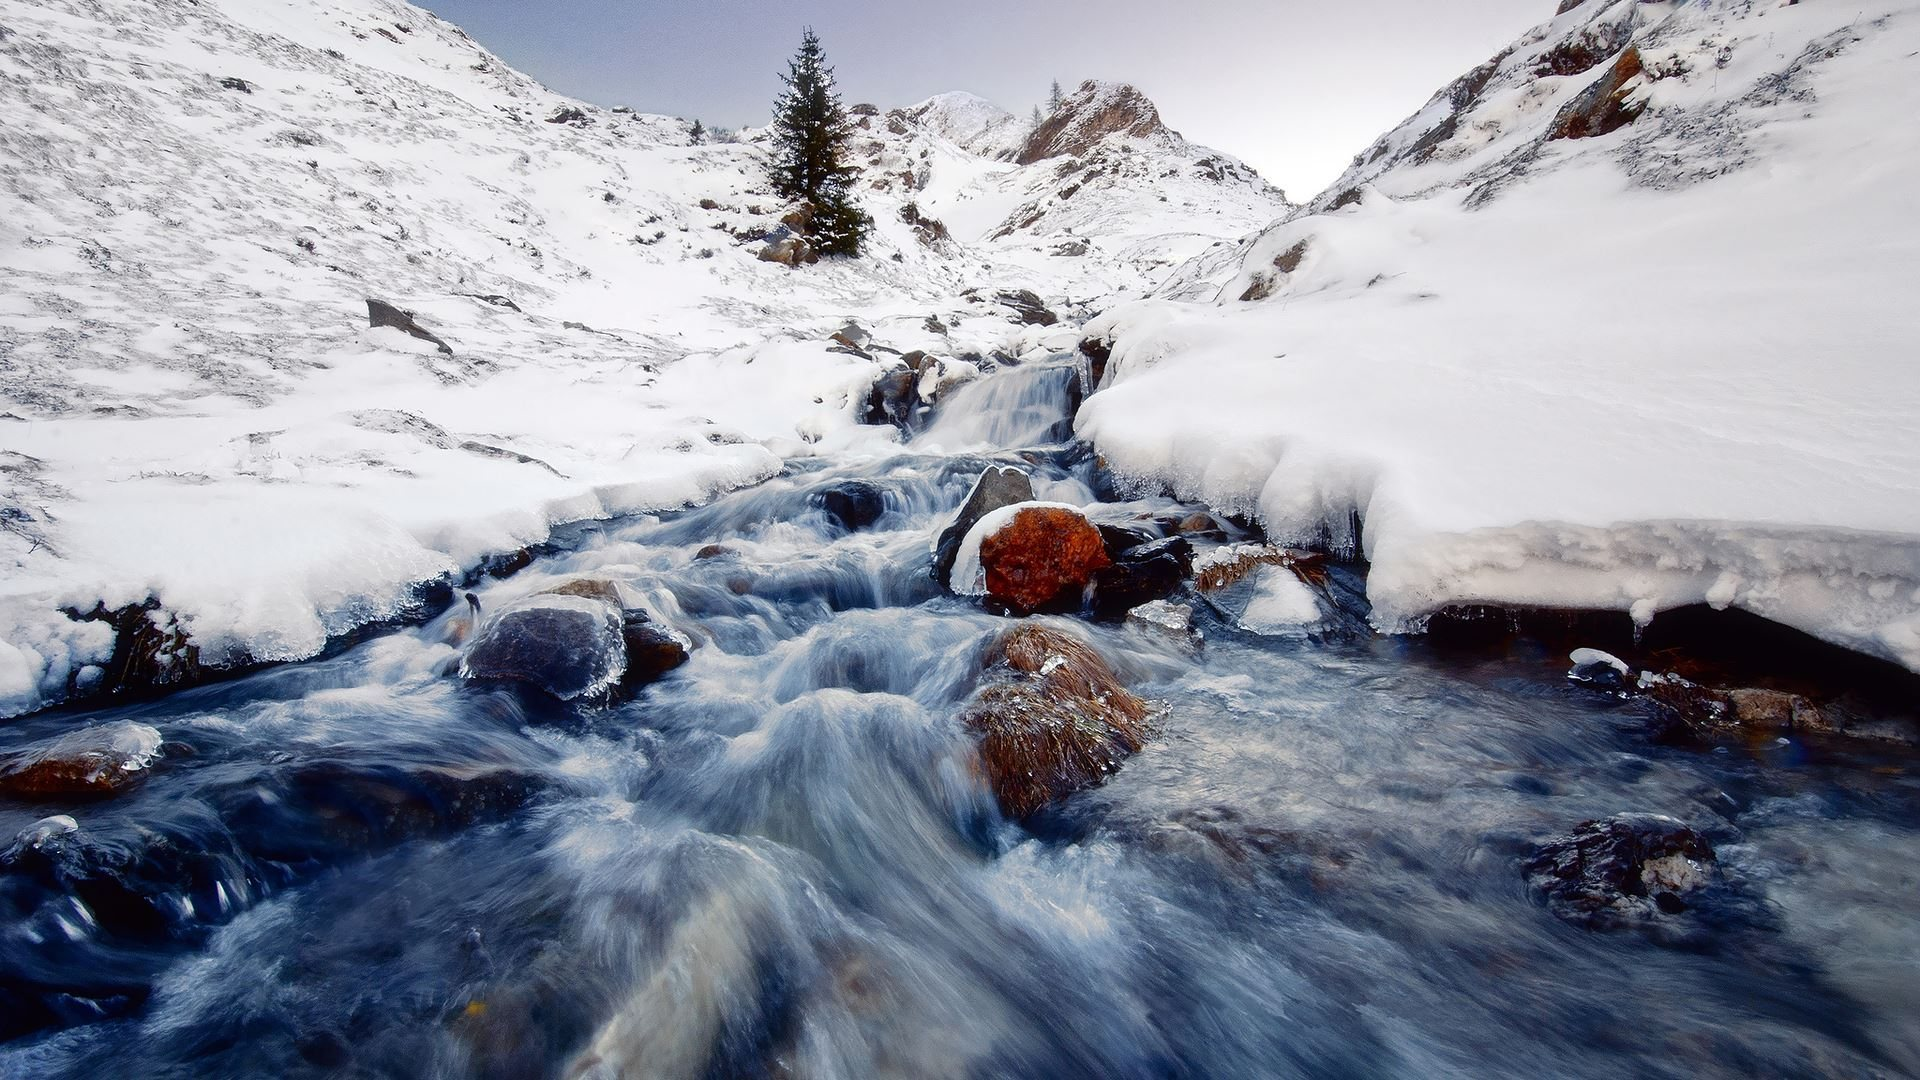 Winter Mountain Stream 33693 1920x1200 px